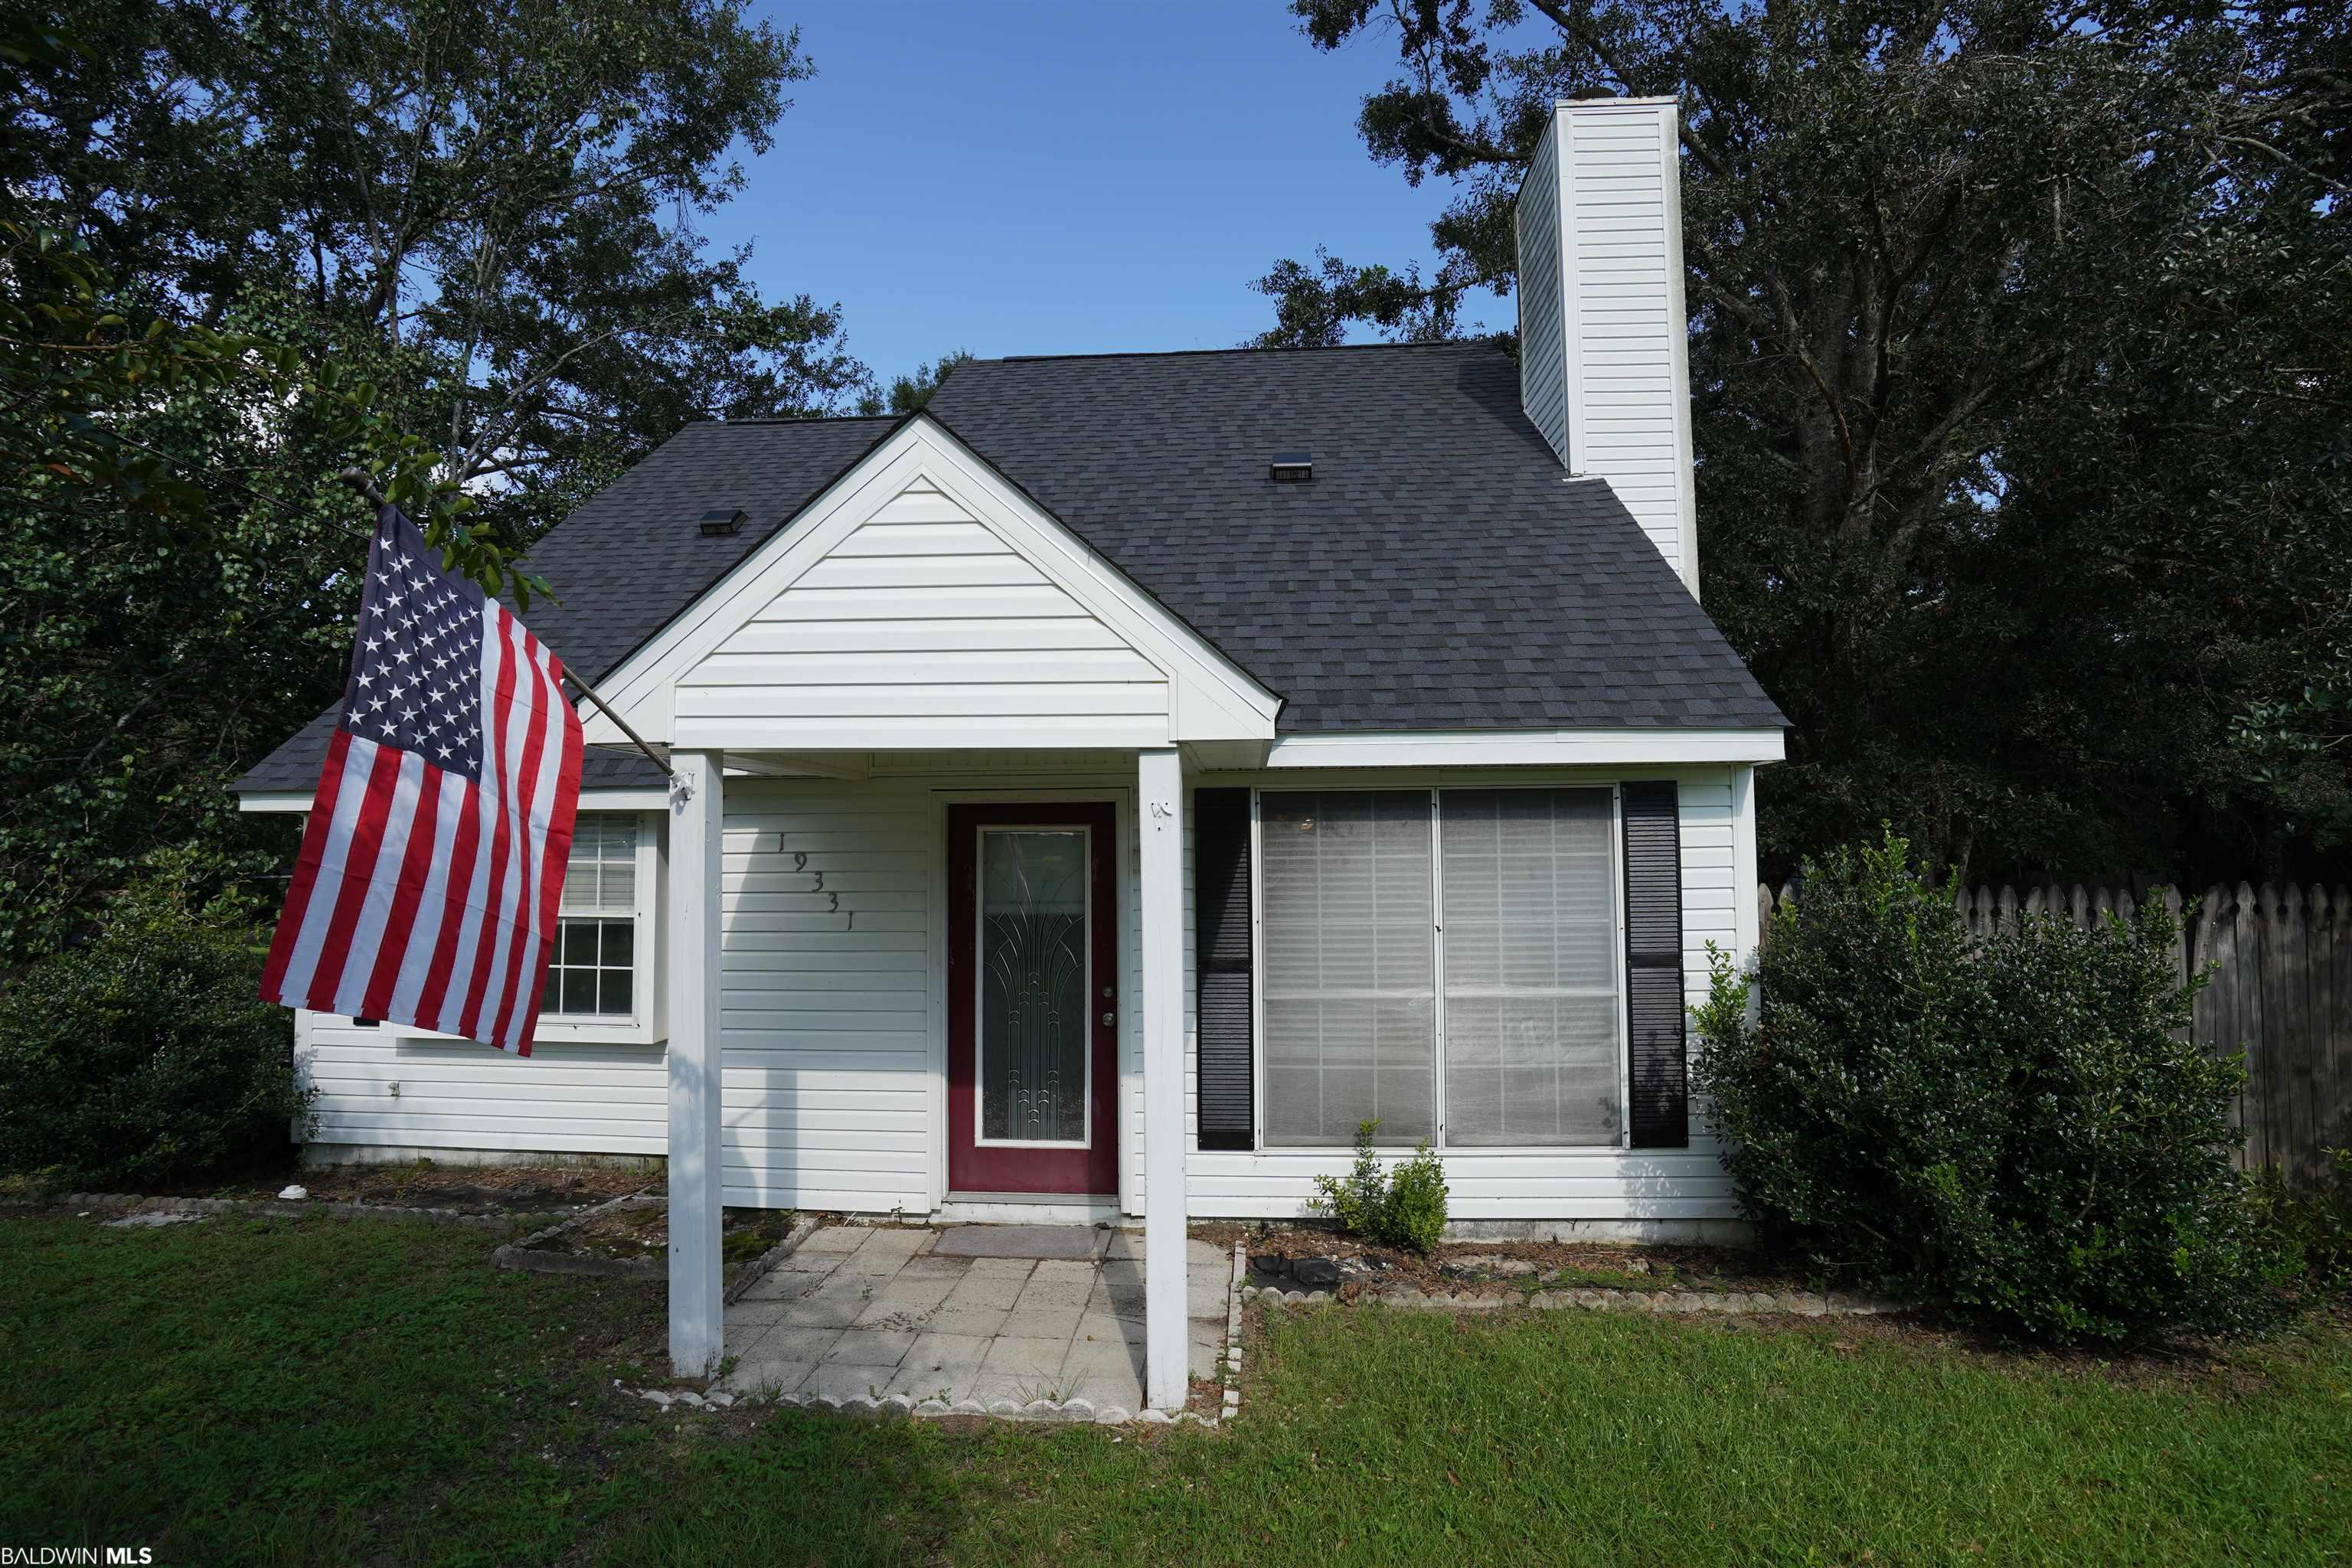 Quaint 3 bed, 2 bath cottage in a quiet neighborhood. Located within walking distance to Robertsdale Elementary School and a short drive to Historic downtown and all that it has to offer, such as some of the areas finest dining, shopping and the highly regarded both Garrett and the Honey Bee Parks. Also, close to the biking and hiking trails. This home features plenty of natural lighting and a fireplace in the large great room. Upstairs is reserved for the spacious primary bedroom, bathroom and walk in closet. The kitchen/ breakfast nook leads out to the large screened in porch overlooking the calming natural landscape. Perfect for entertaining guests and/or to relax at the end of the day with your favorite beverage.